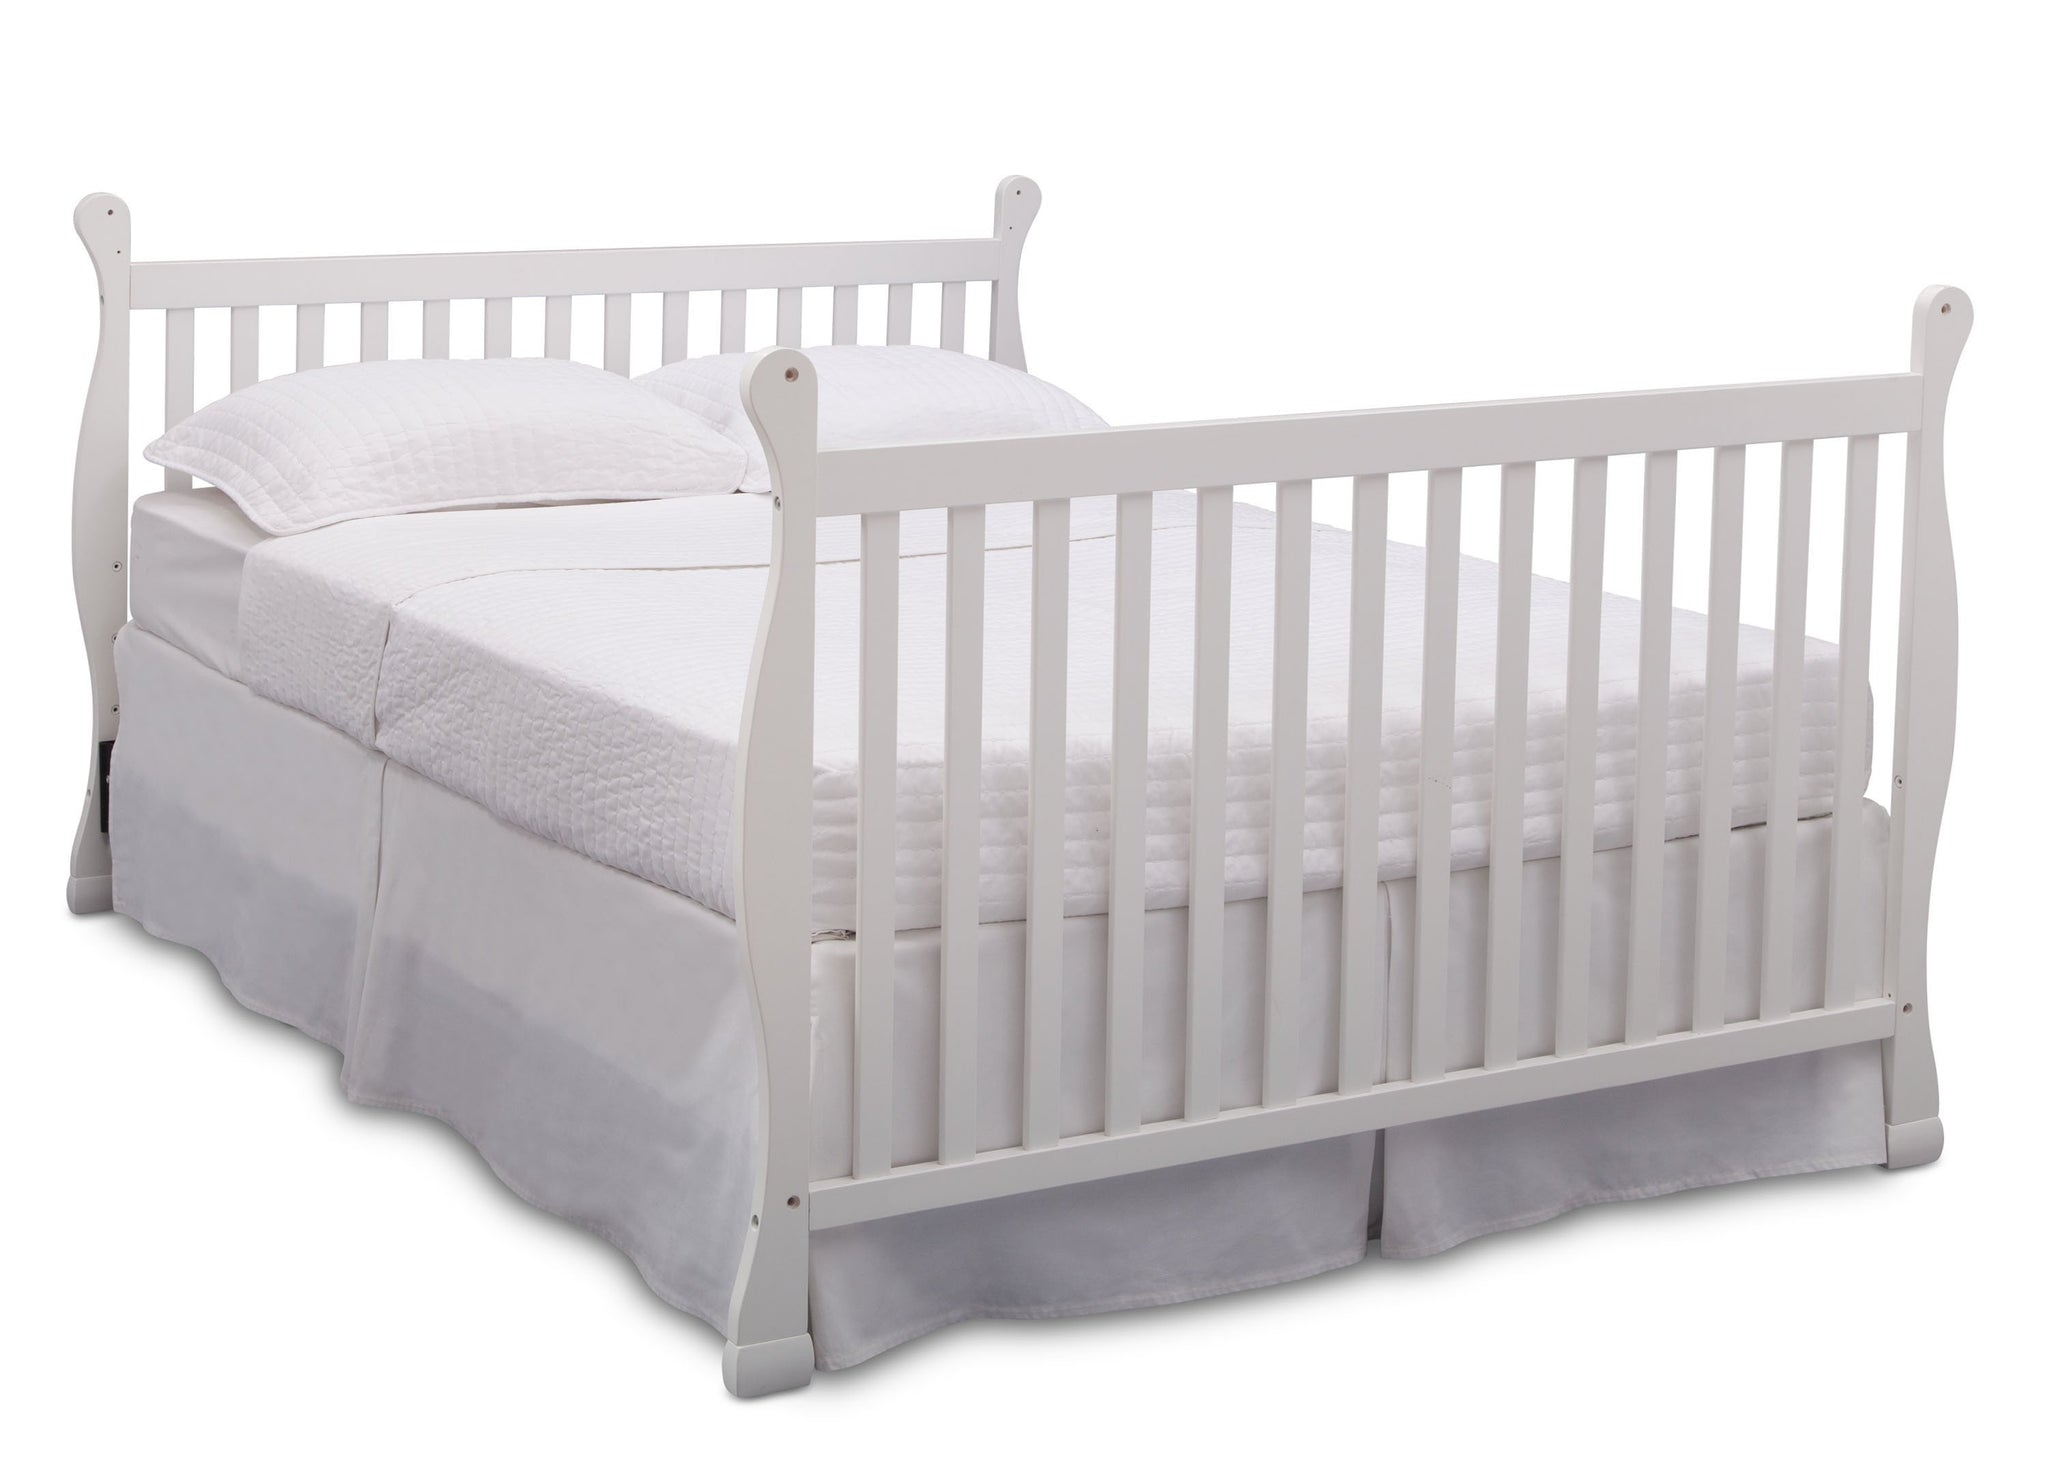 Delta Children Bianca (130) Riverside 4-in-1 Crib, angled conversion to full size bed, a6a